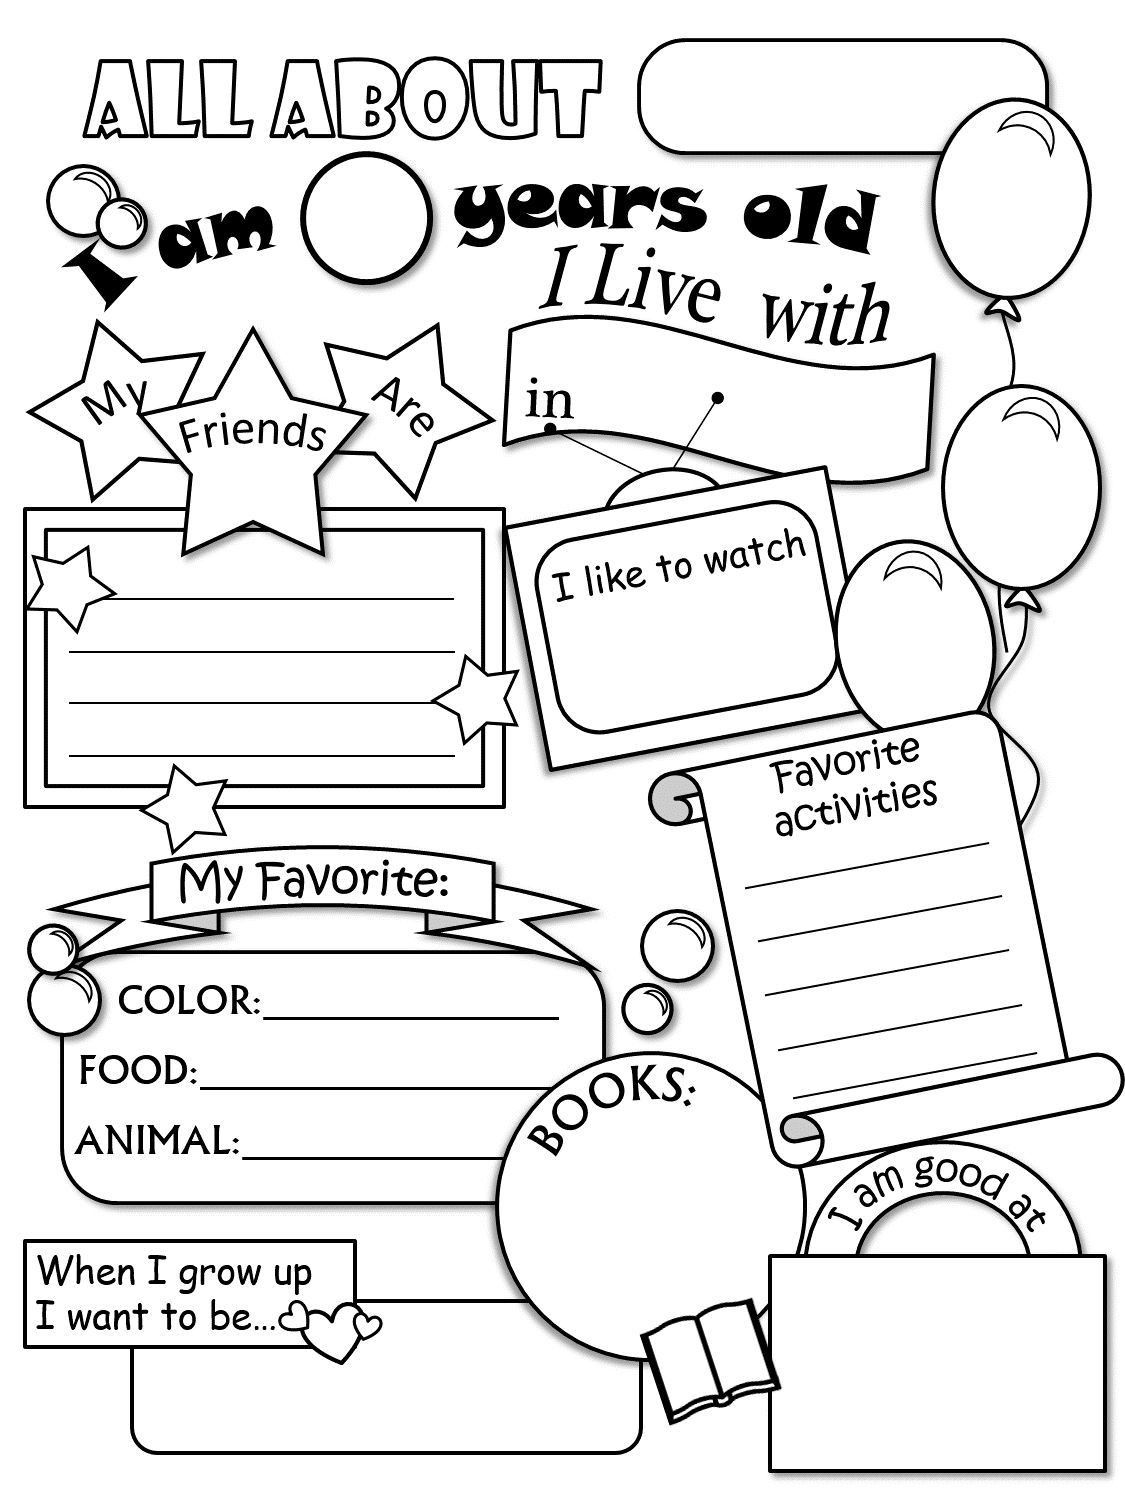 3 Free Printable Homeschool Worksheets All About Me Worksheet freebie cute    All about me worksheet [ 1500 x 1125 Pixel ]